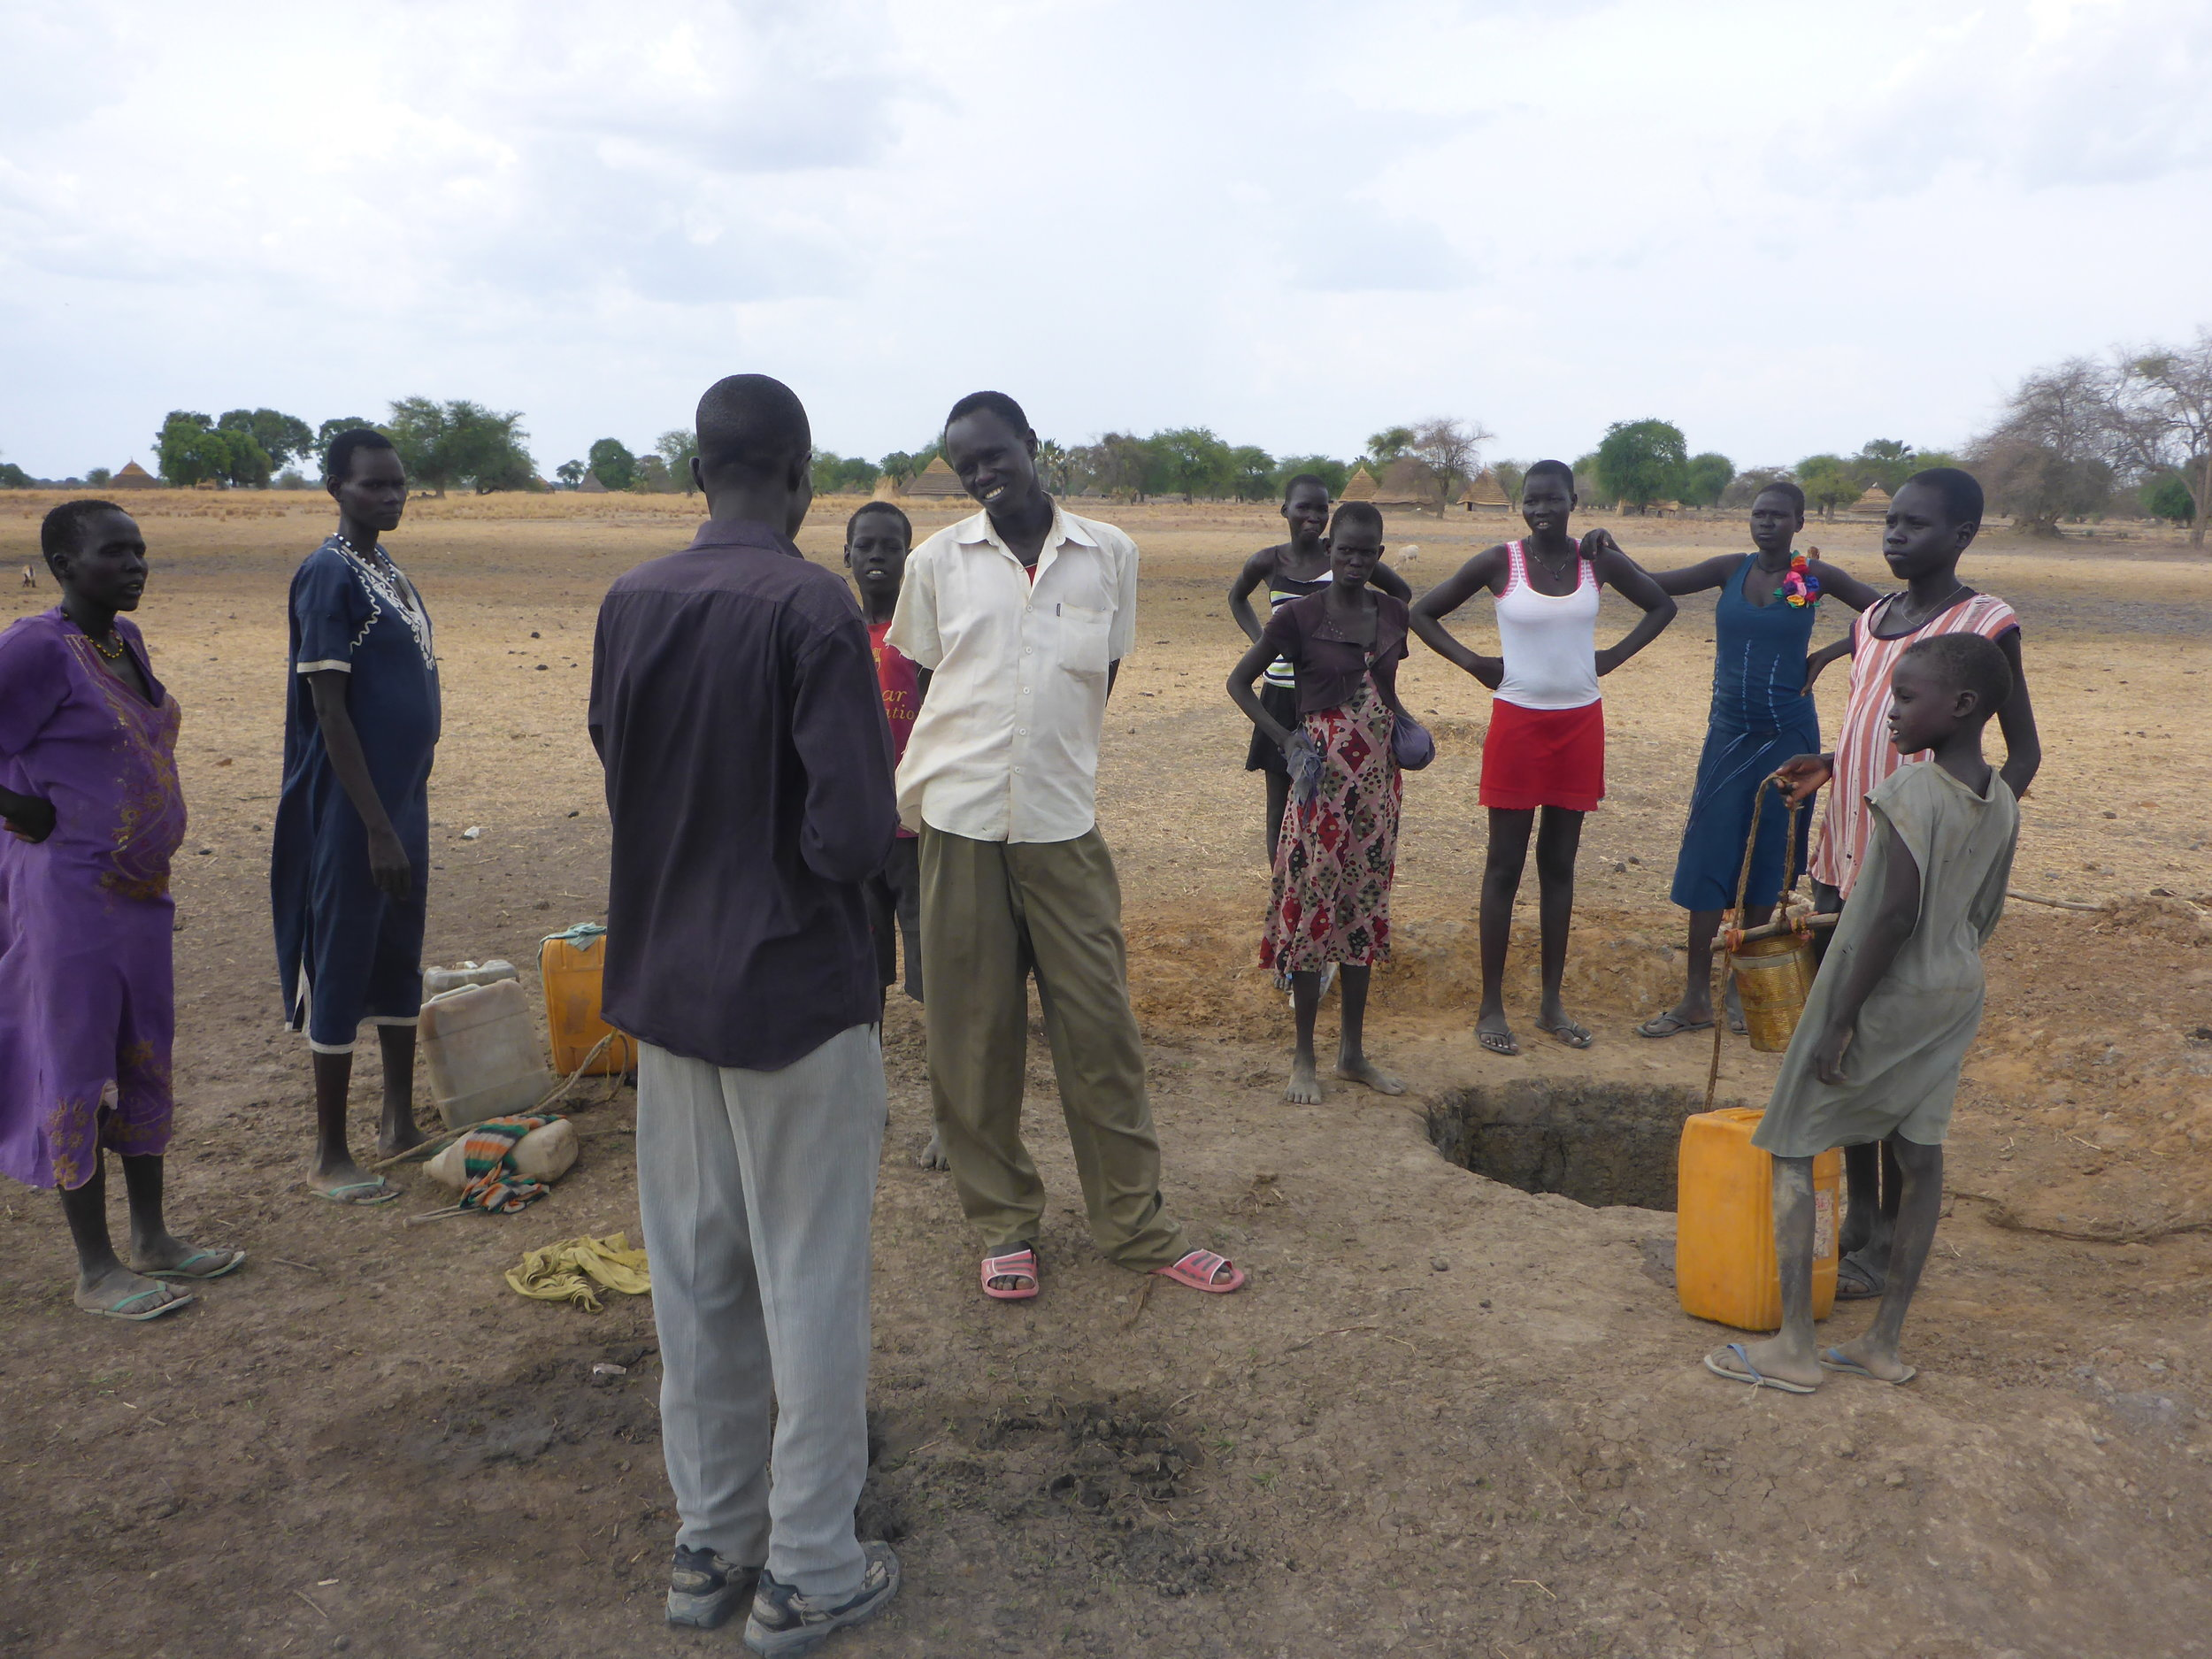 Villagers in bookanyara village receive hygiene education from wfss.